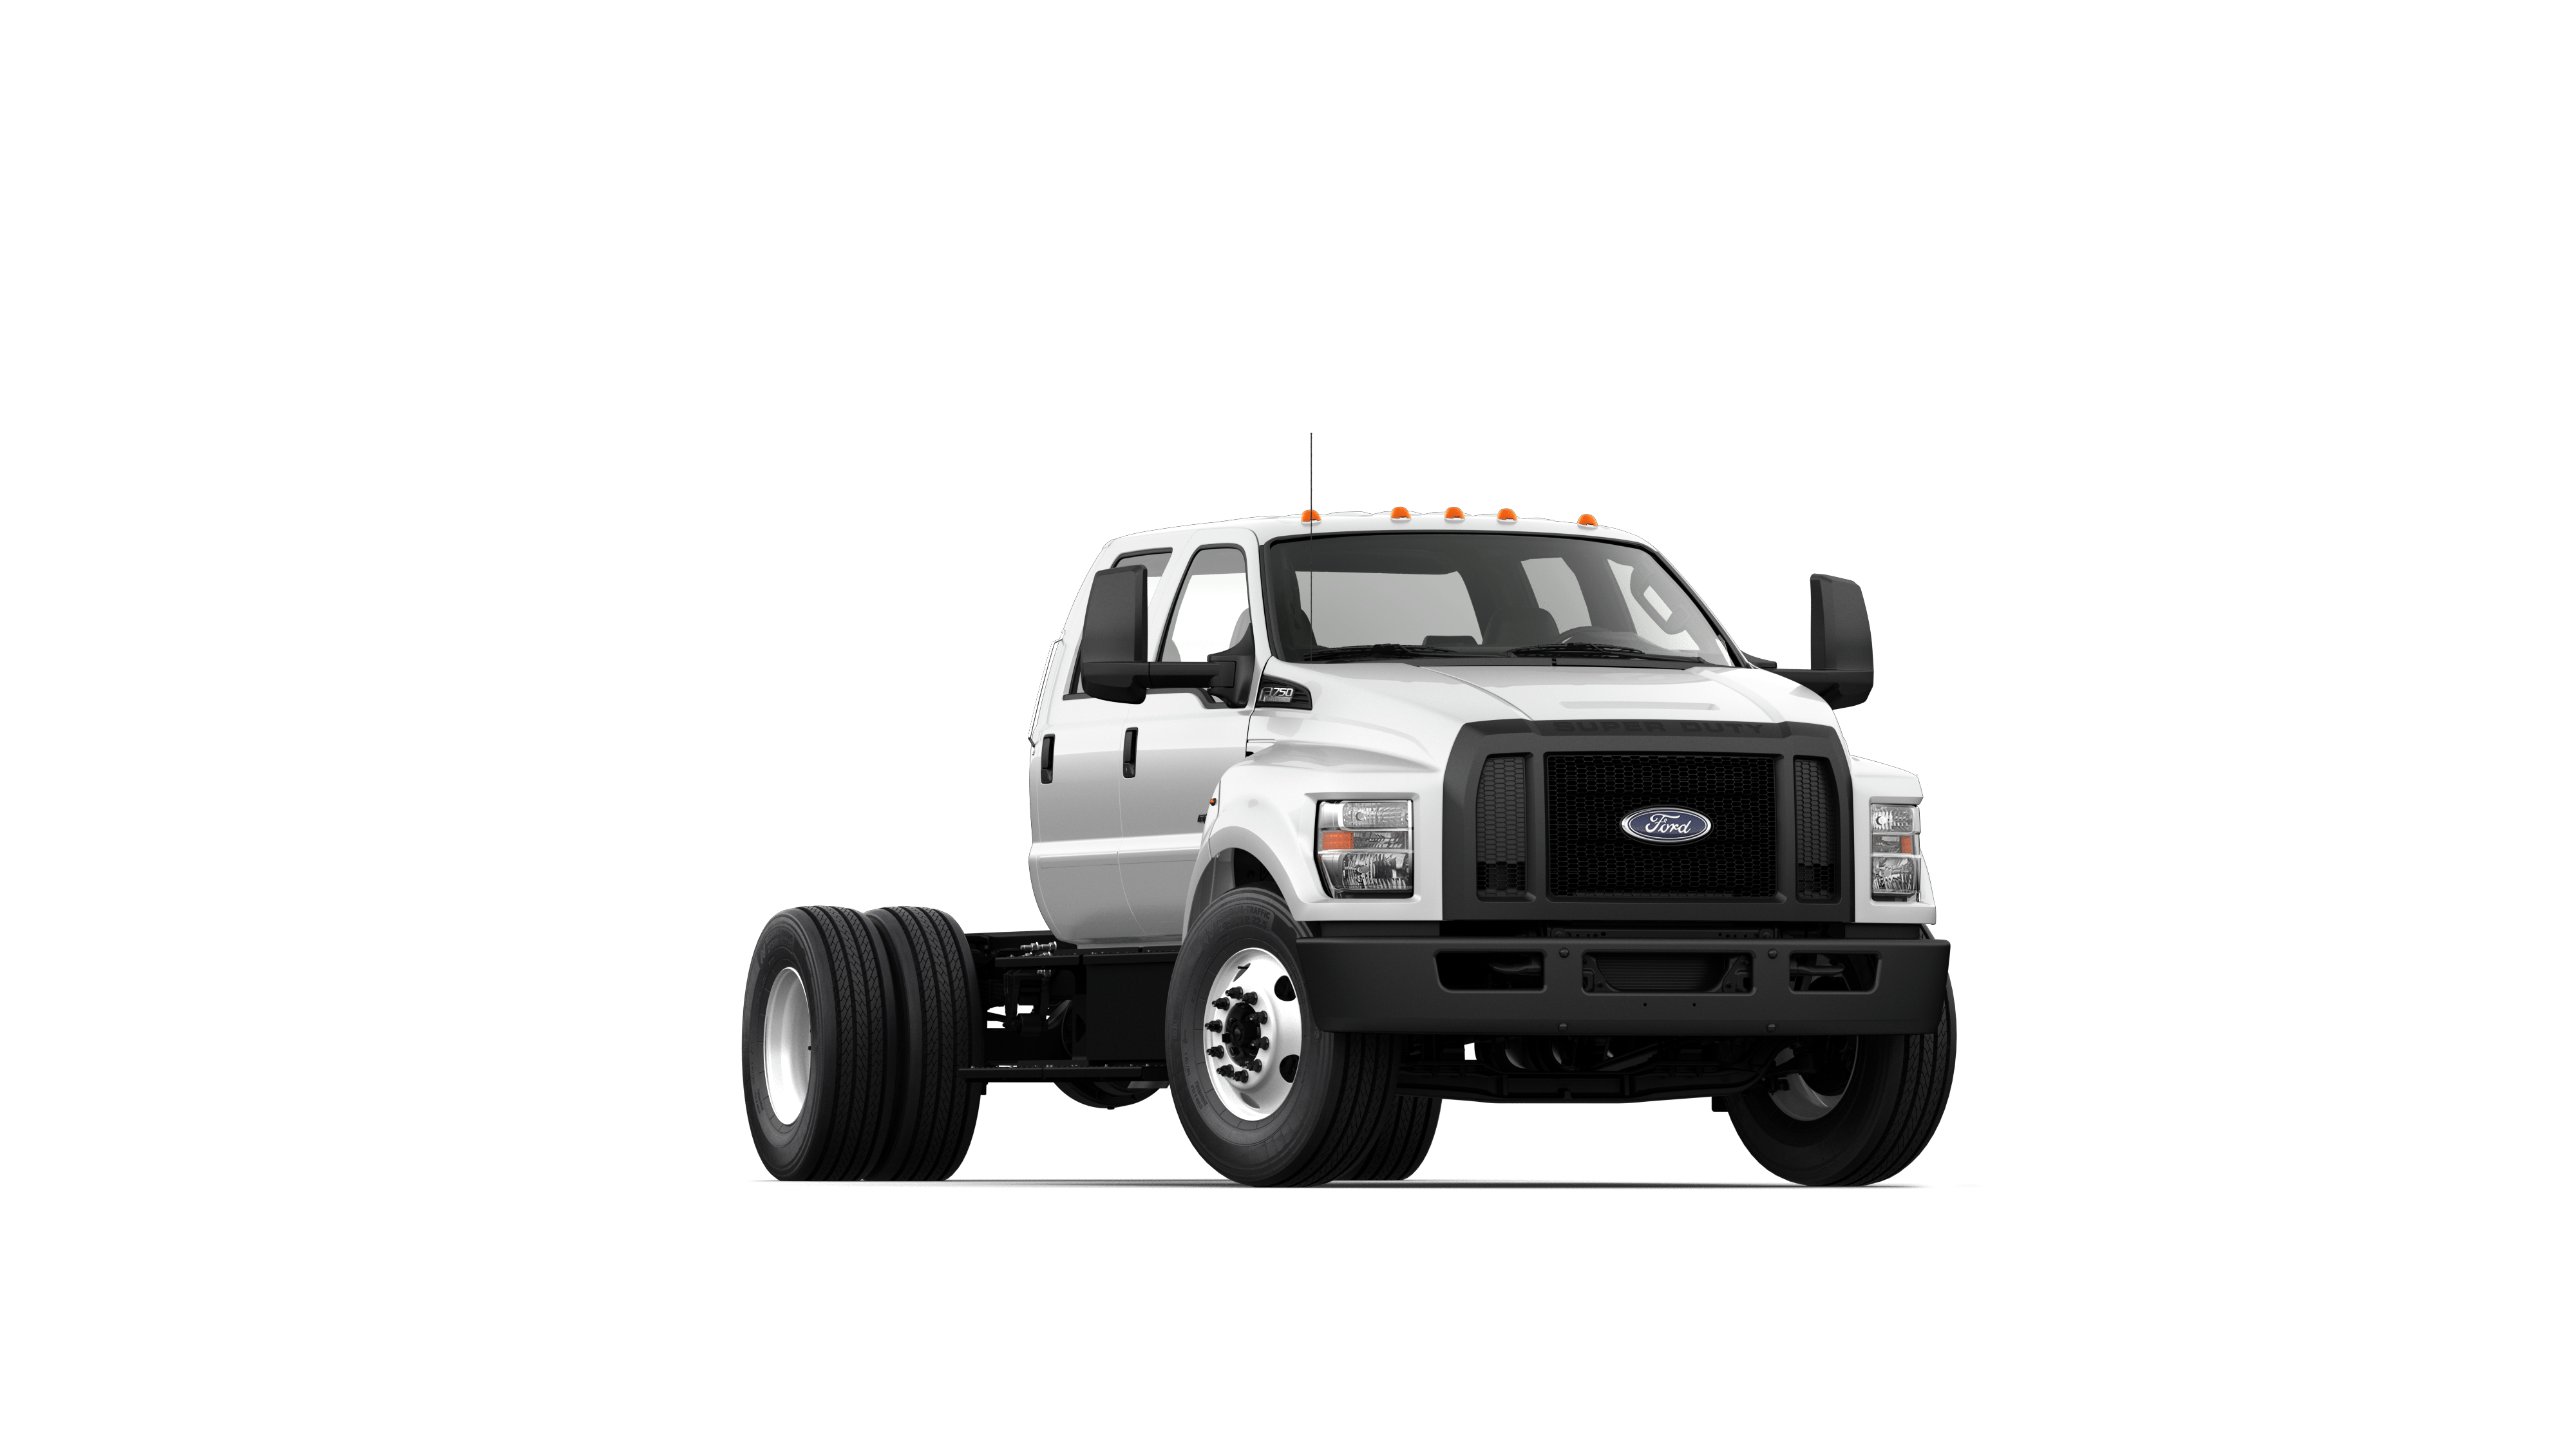 New F-750SD Vehicles for Sale in Terrell - Platinum Ford